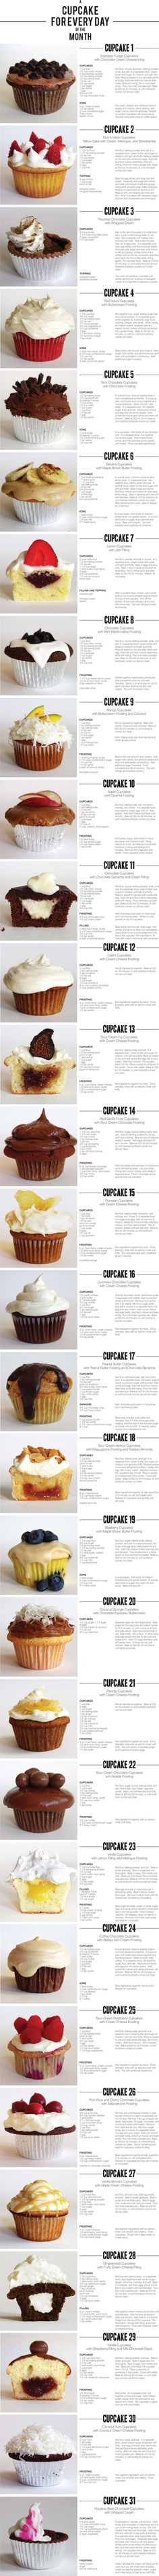 A Cupcake For Every Day of The Month | Recipe Sharing Community